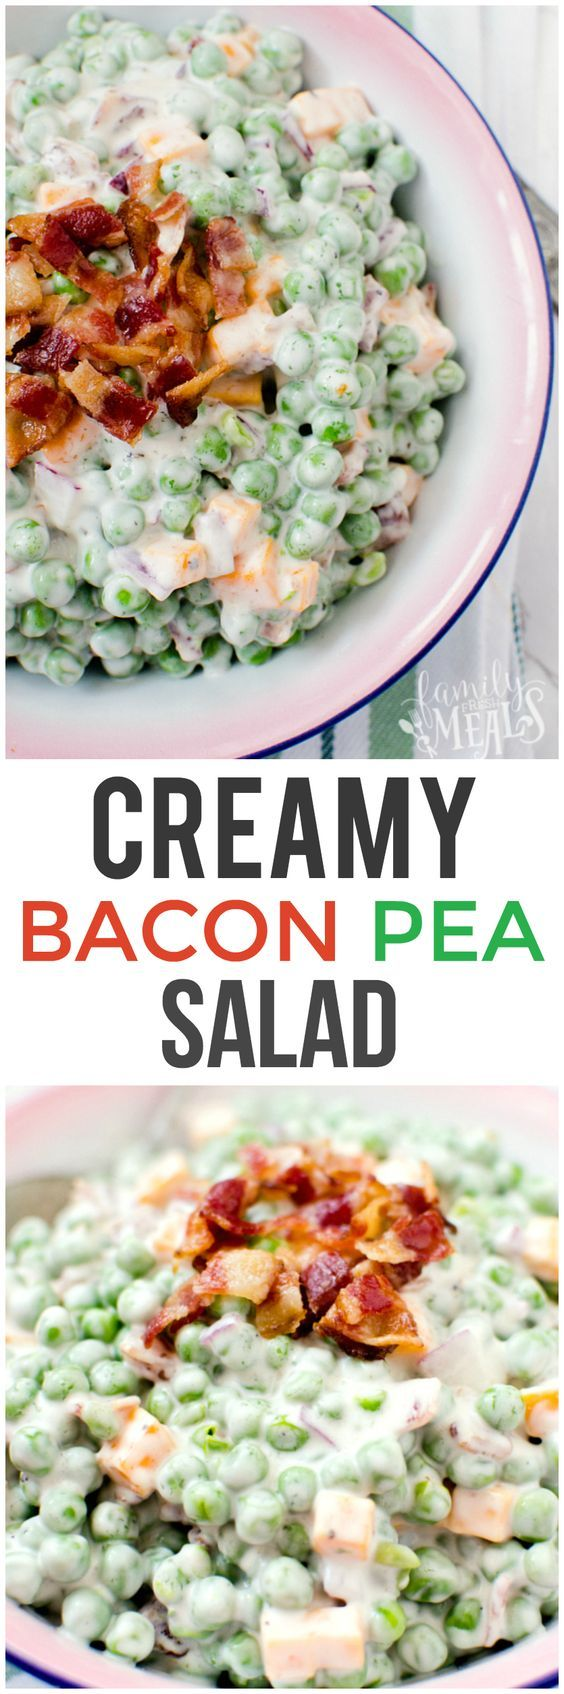 Creamy Bacon Pea Salad Recipe - Family Fresh Meals - LOVE THIS REICPE